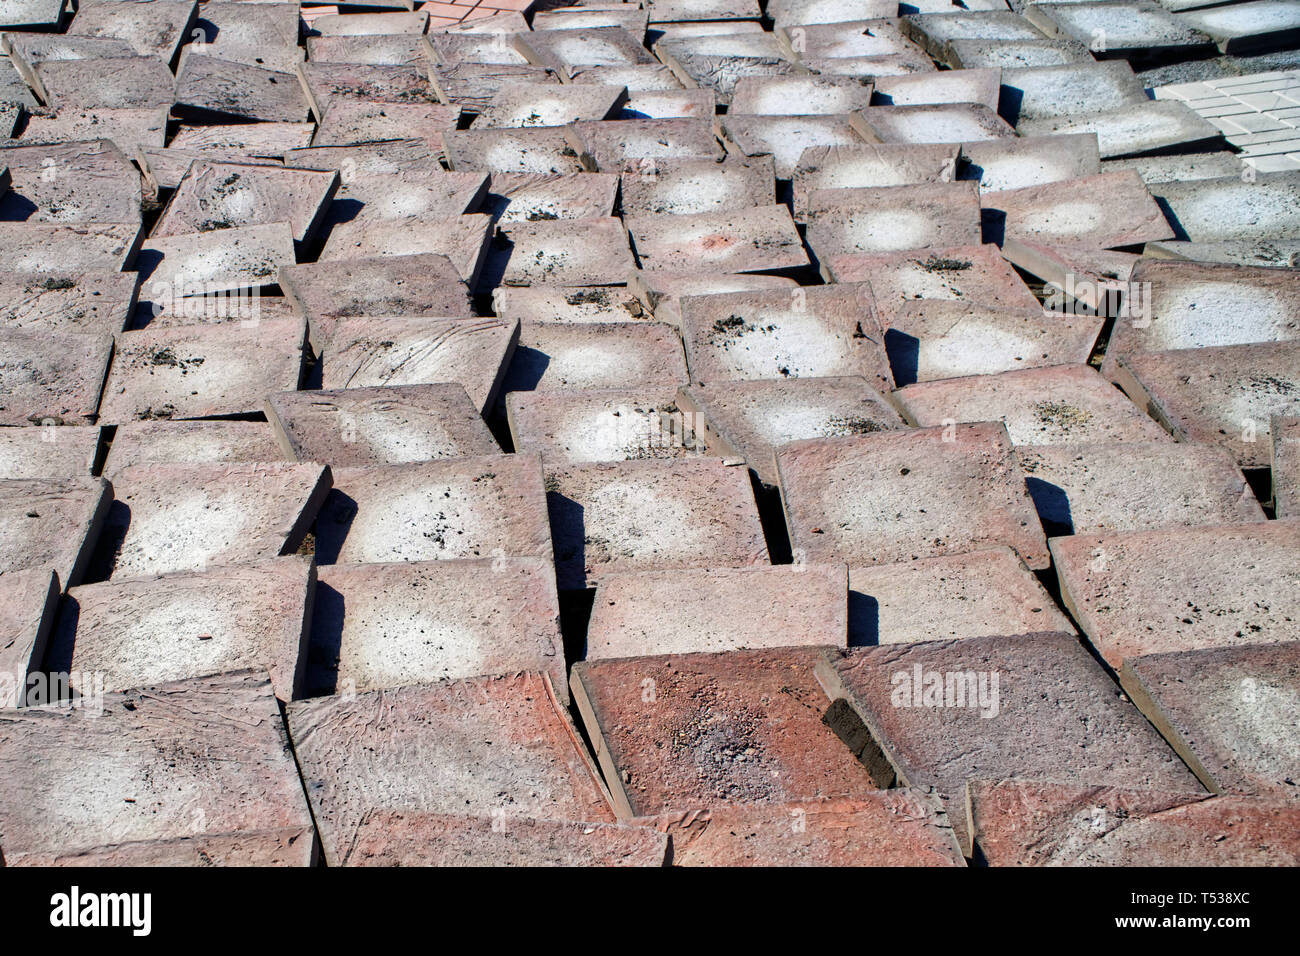 Old worn paving slabs during dismantling from a city street. Reconstruction. Urban economy. - Stock Image